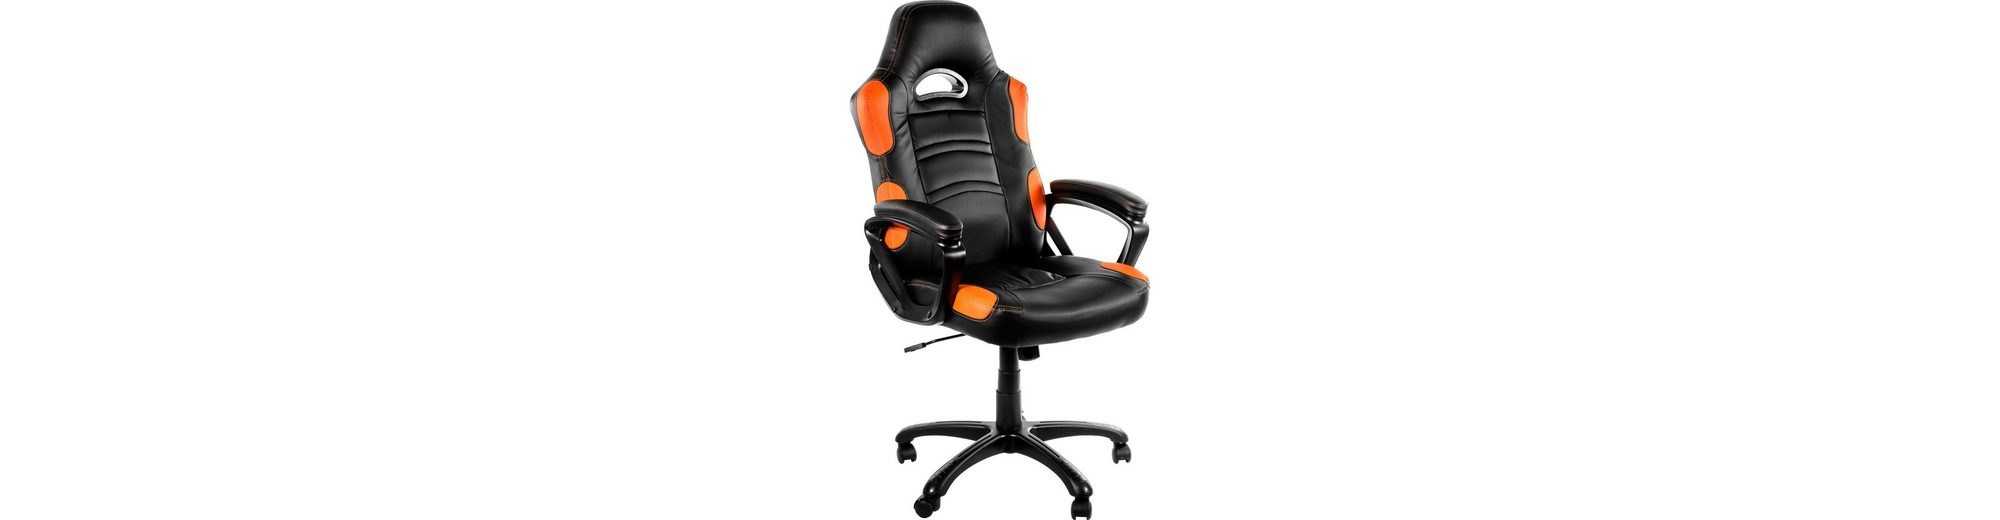 Arozzi Spielsitz »Enzo Gaming Chair«